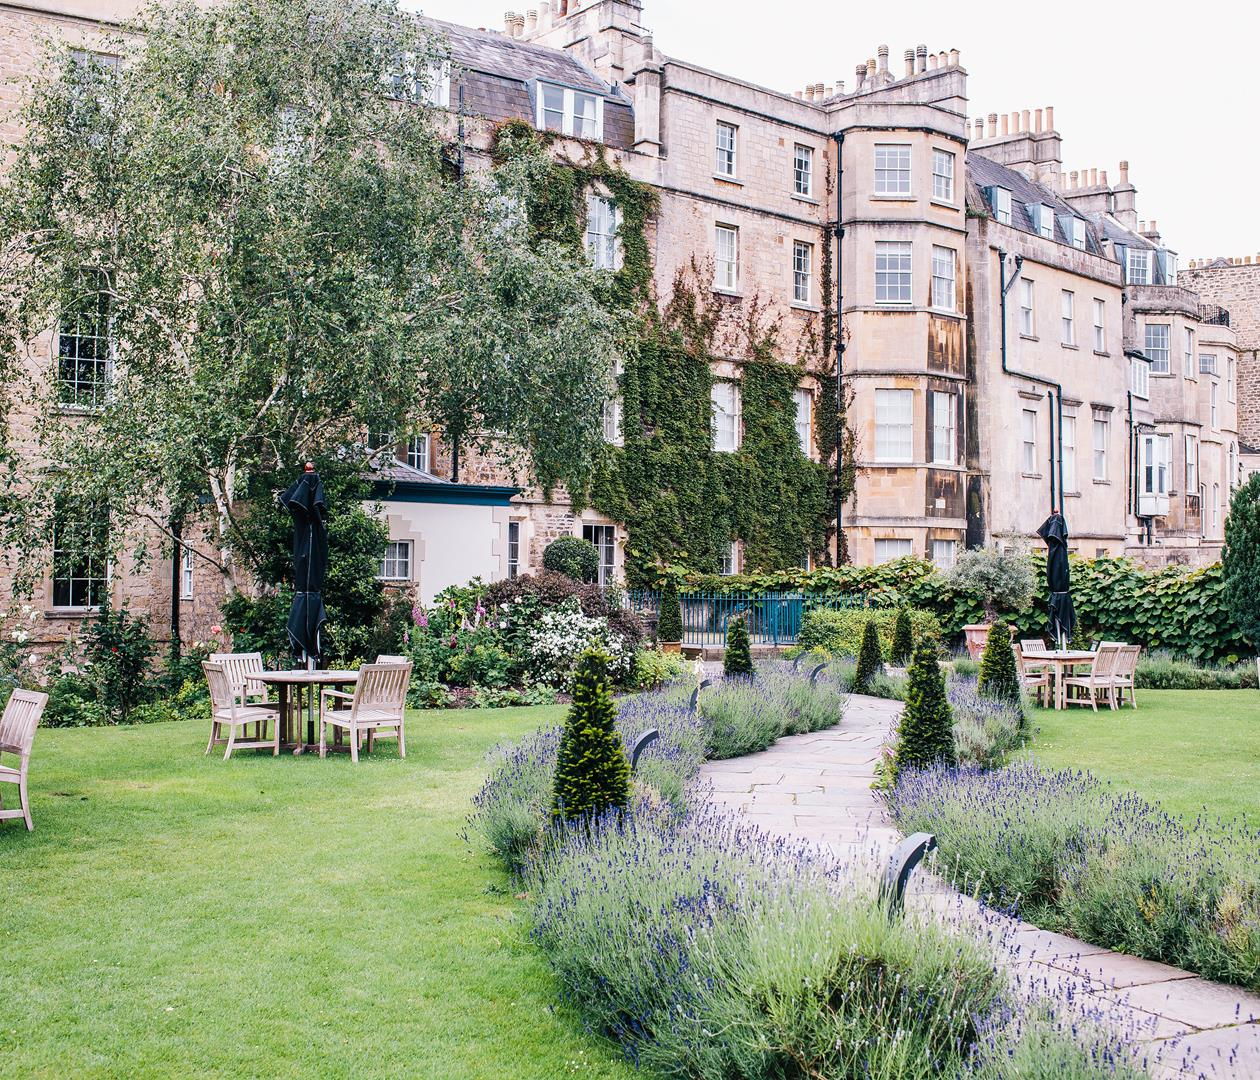 Royal Crescent Hotel & Spa, bath, england, uk, luxury hotel